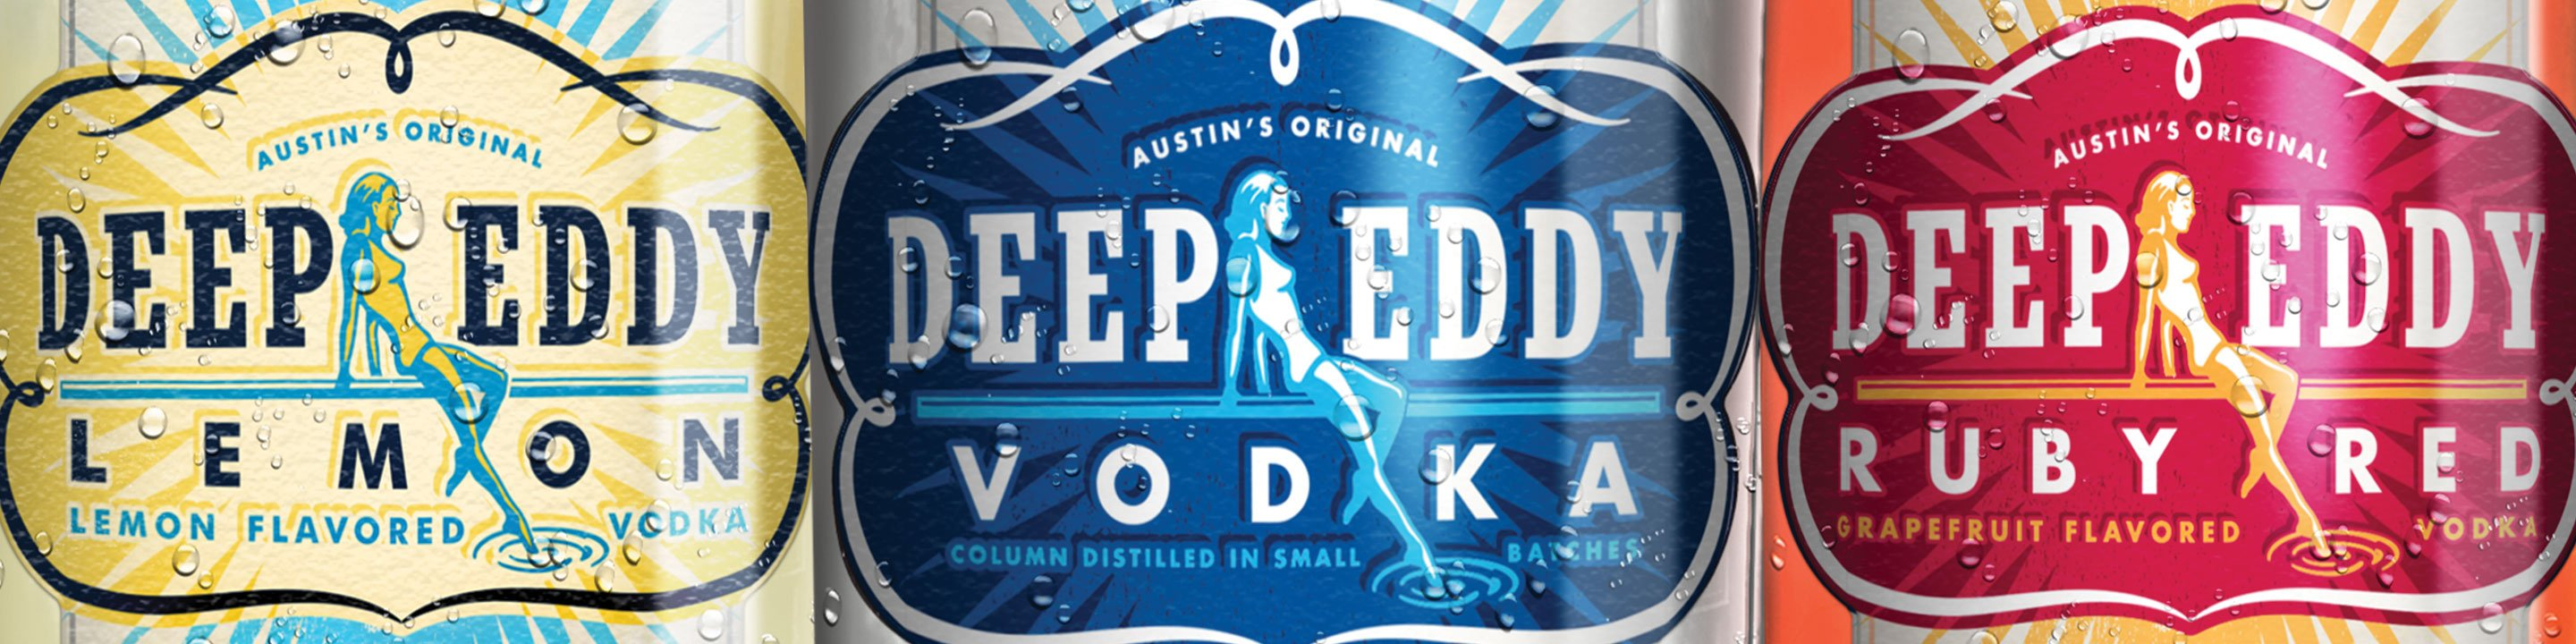 Taste the Deep Eddy Difference  Deep Eddy Vodka is made with all-natural ingredients and real fruit juice. You won't find high-fructose corn syrup or processed sweeteners in this vodka. Being 10x distilled and 8x filtered removes the impurities ensuring a nice, smooth finish